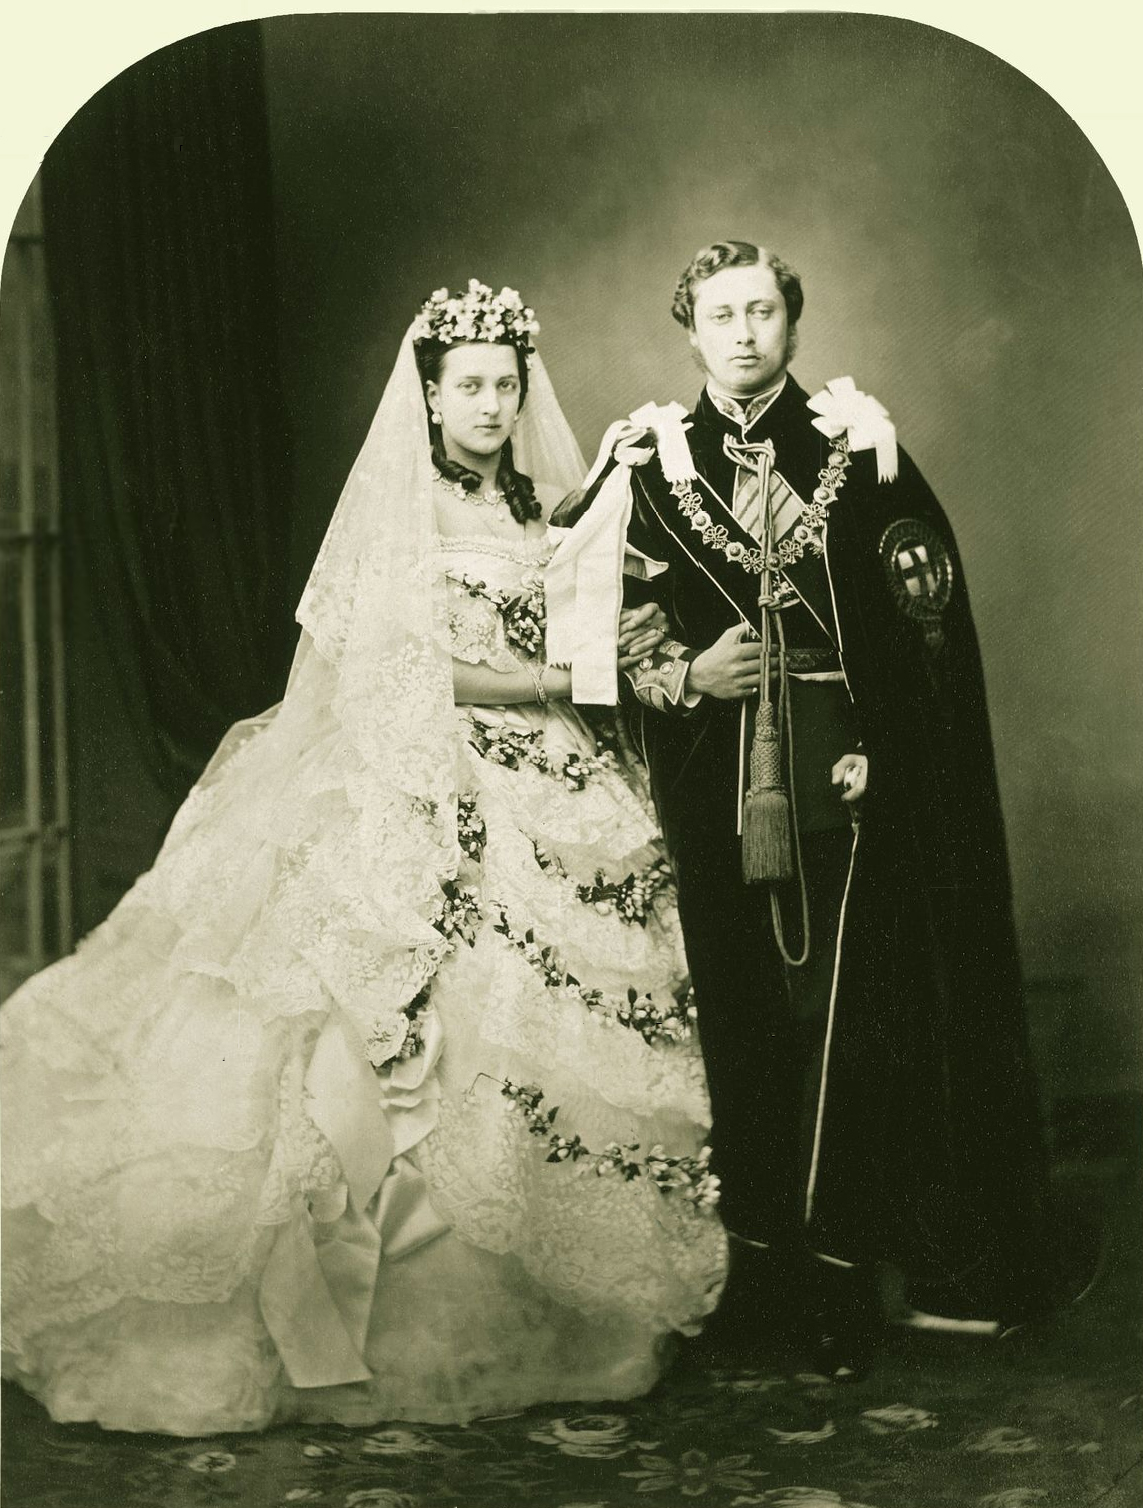 Wedding of Albert Edward Prince of Wales and Alexandra of Denmark 1863 - Royal Wedding Memorabilia